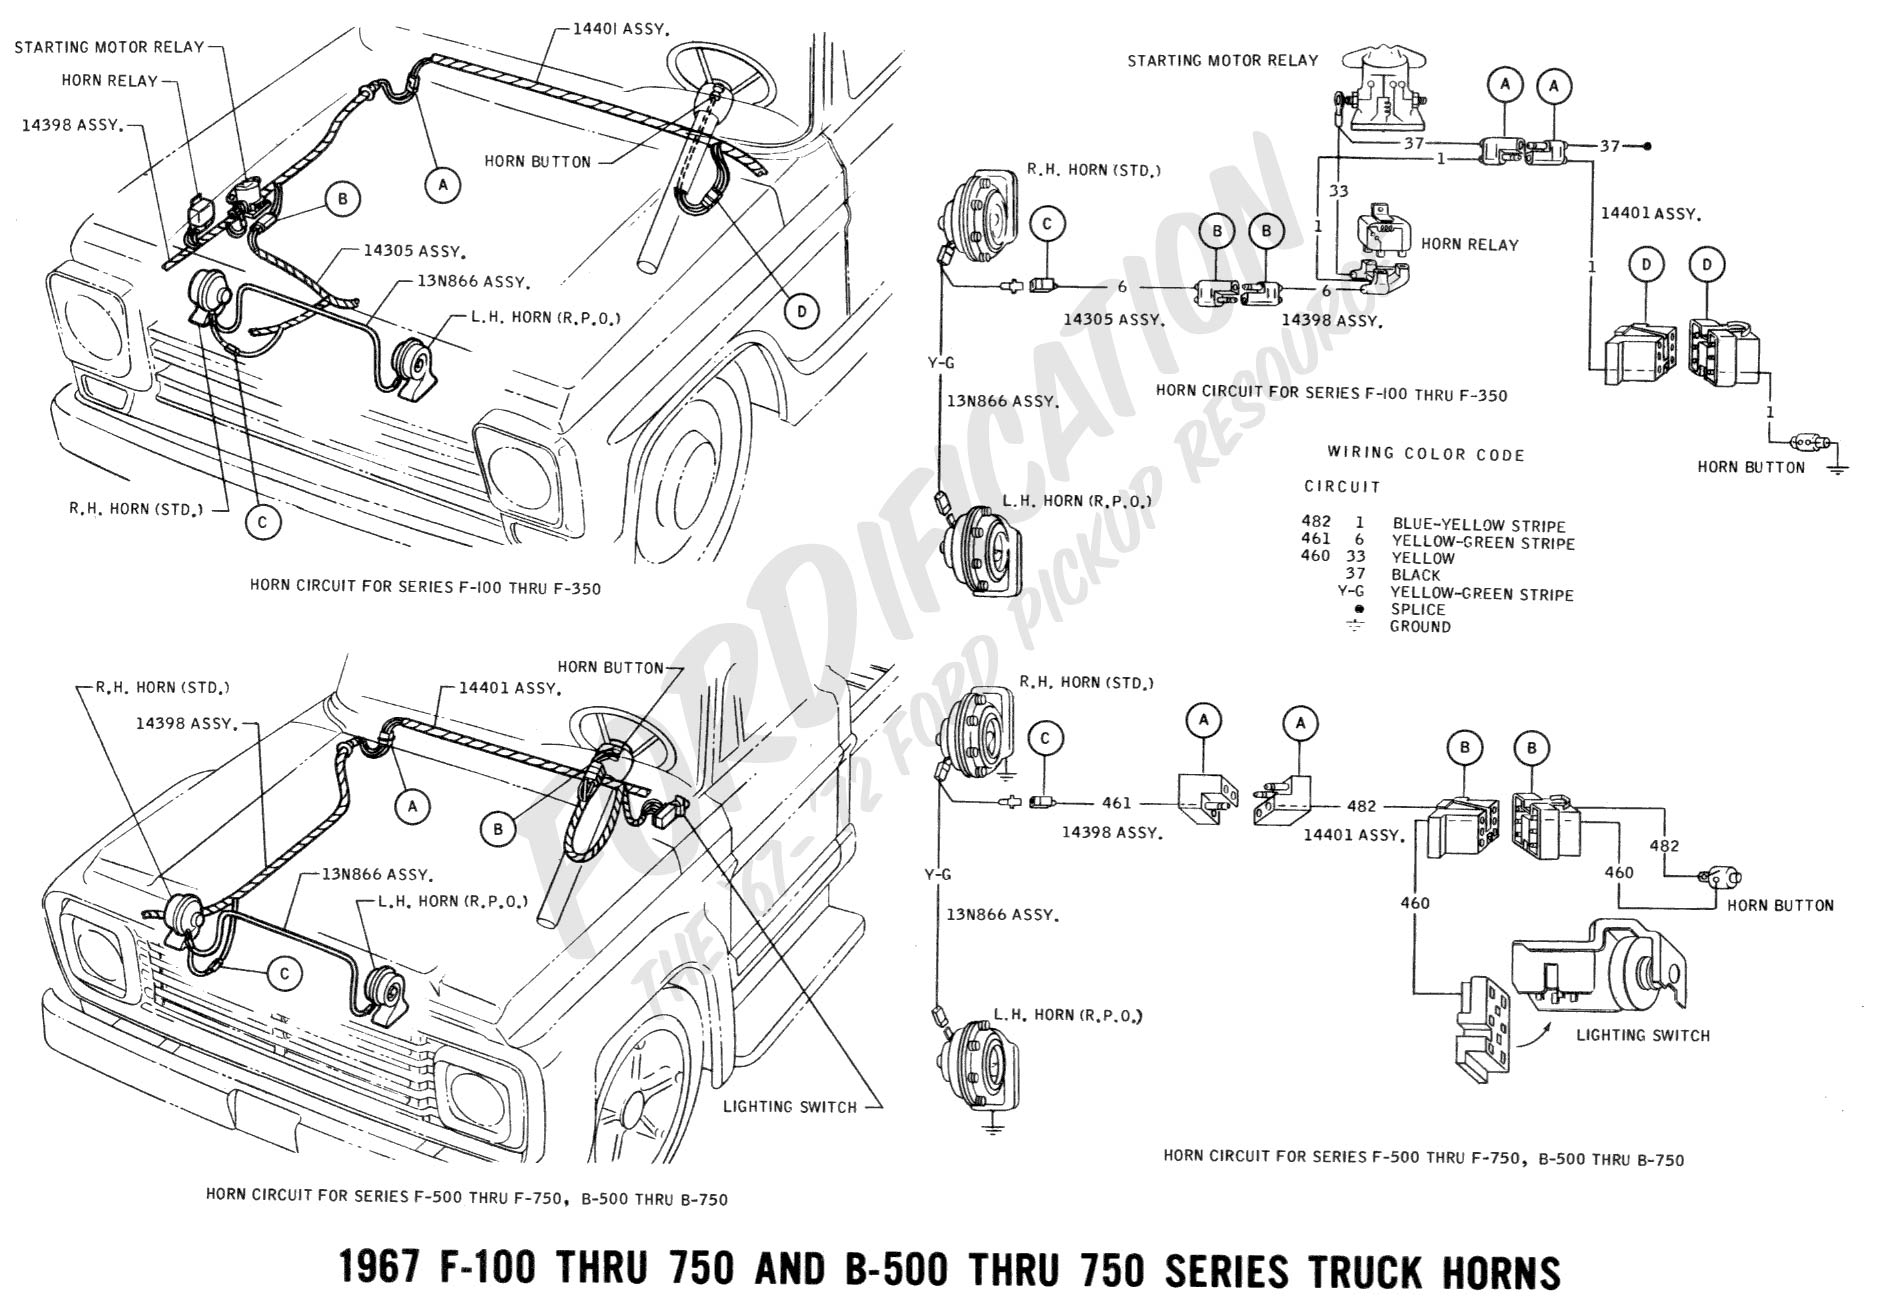 Ford Trim Diagrams Wiring 1964 F100 Diagram 1967 Truck Box F 250 Electrical